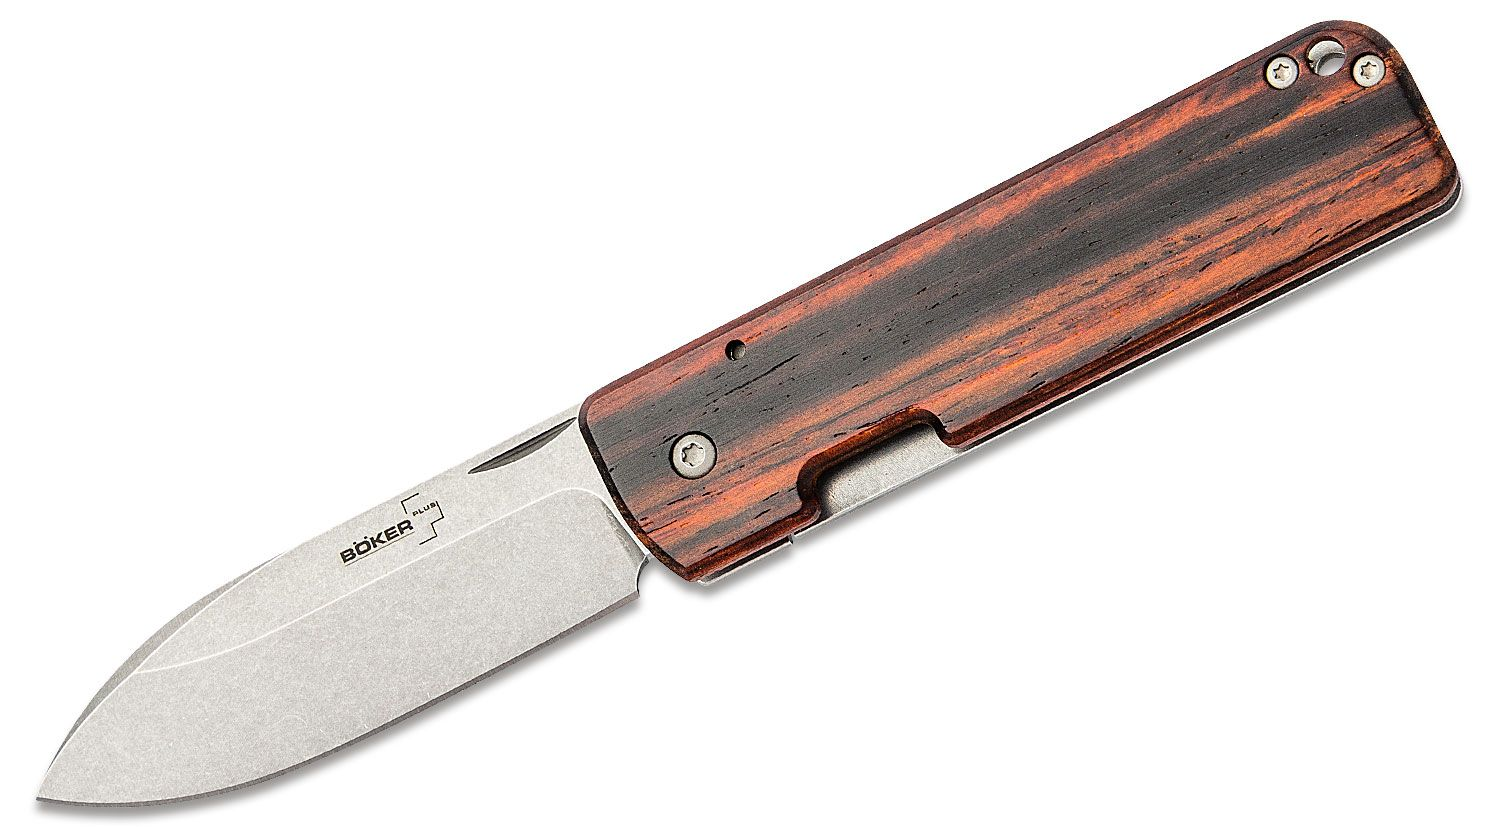 Boker Plus Serge Panchenko Lancer 42 Folding Knife 2.76 inch D2 Stonewashed Blade, Cocobolo Wood with Stainless Steel Back Handles